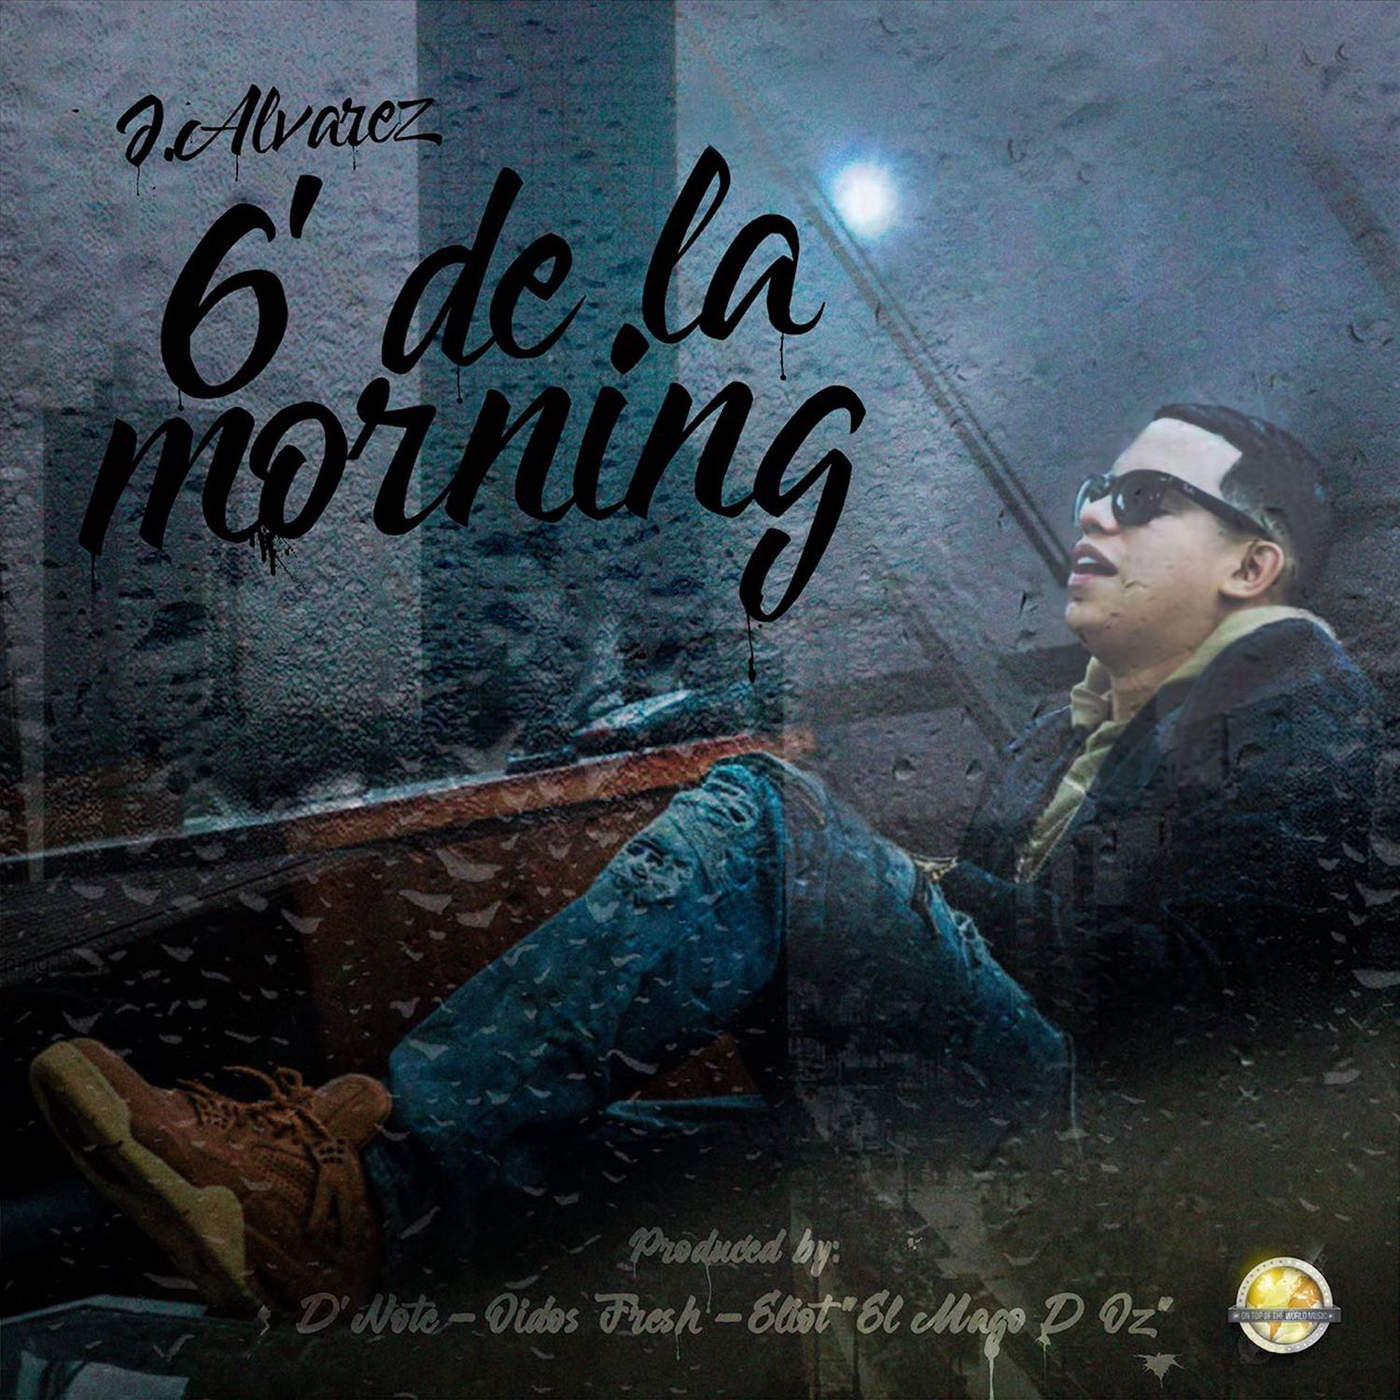 J Alvarez - 6 de la Morning - Single